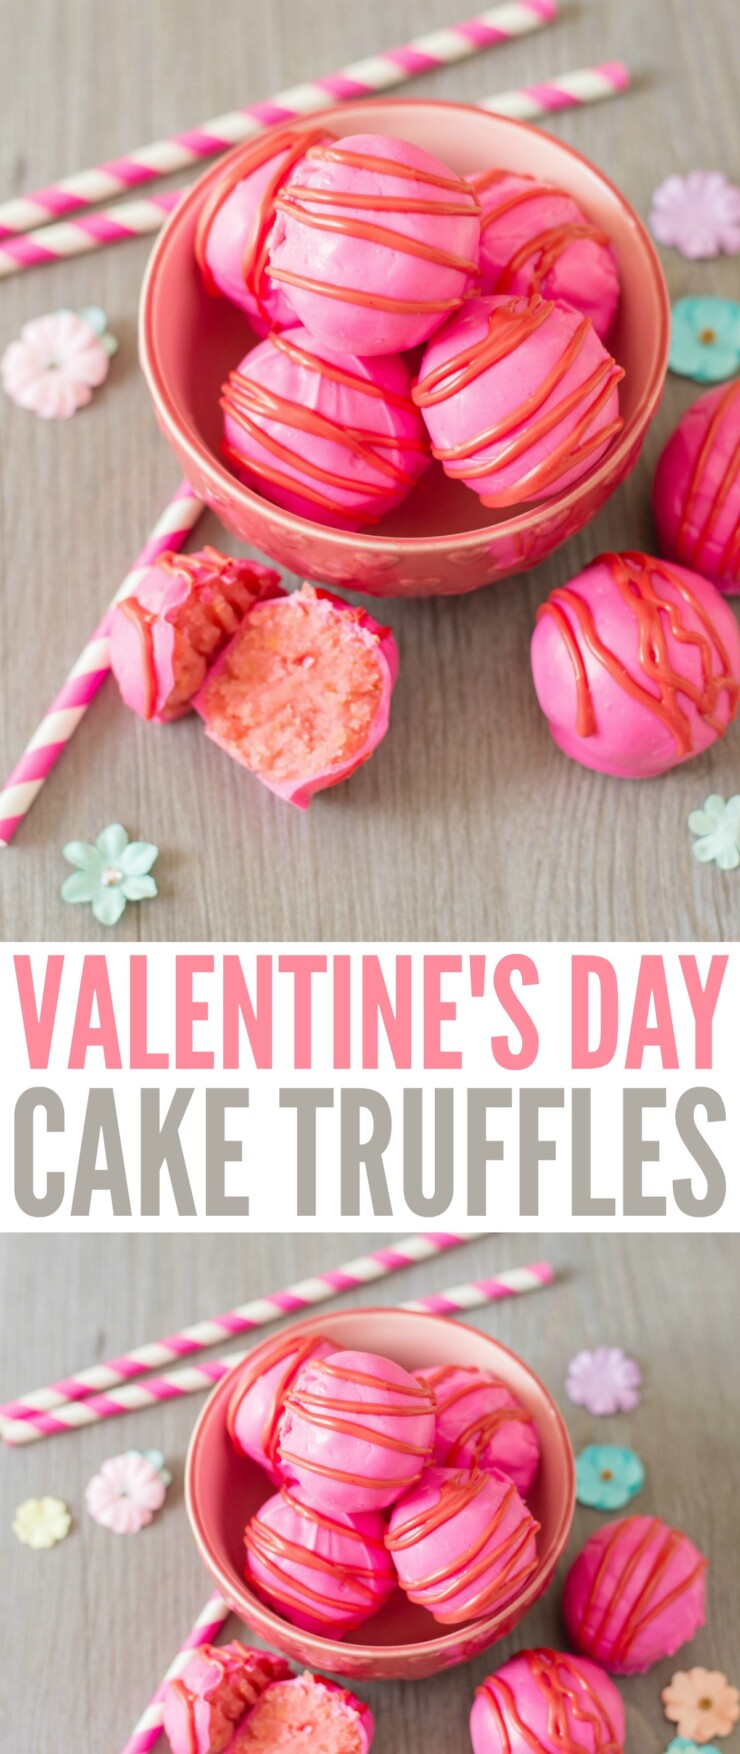 These Valentine's Day Cake Truffles are sure to impress everyone this Valentine's Day! These little bites of creamy cake covered in chocolate are just so delicious. Valentine's Day Cake Balls are easy to make and perfectly festive.